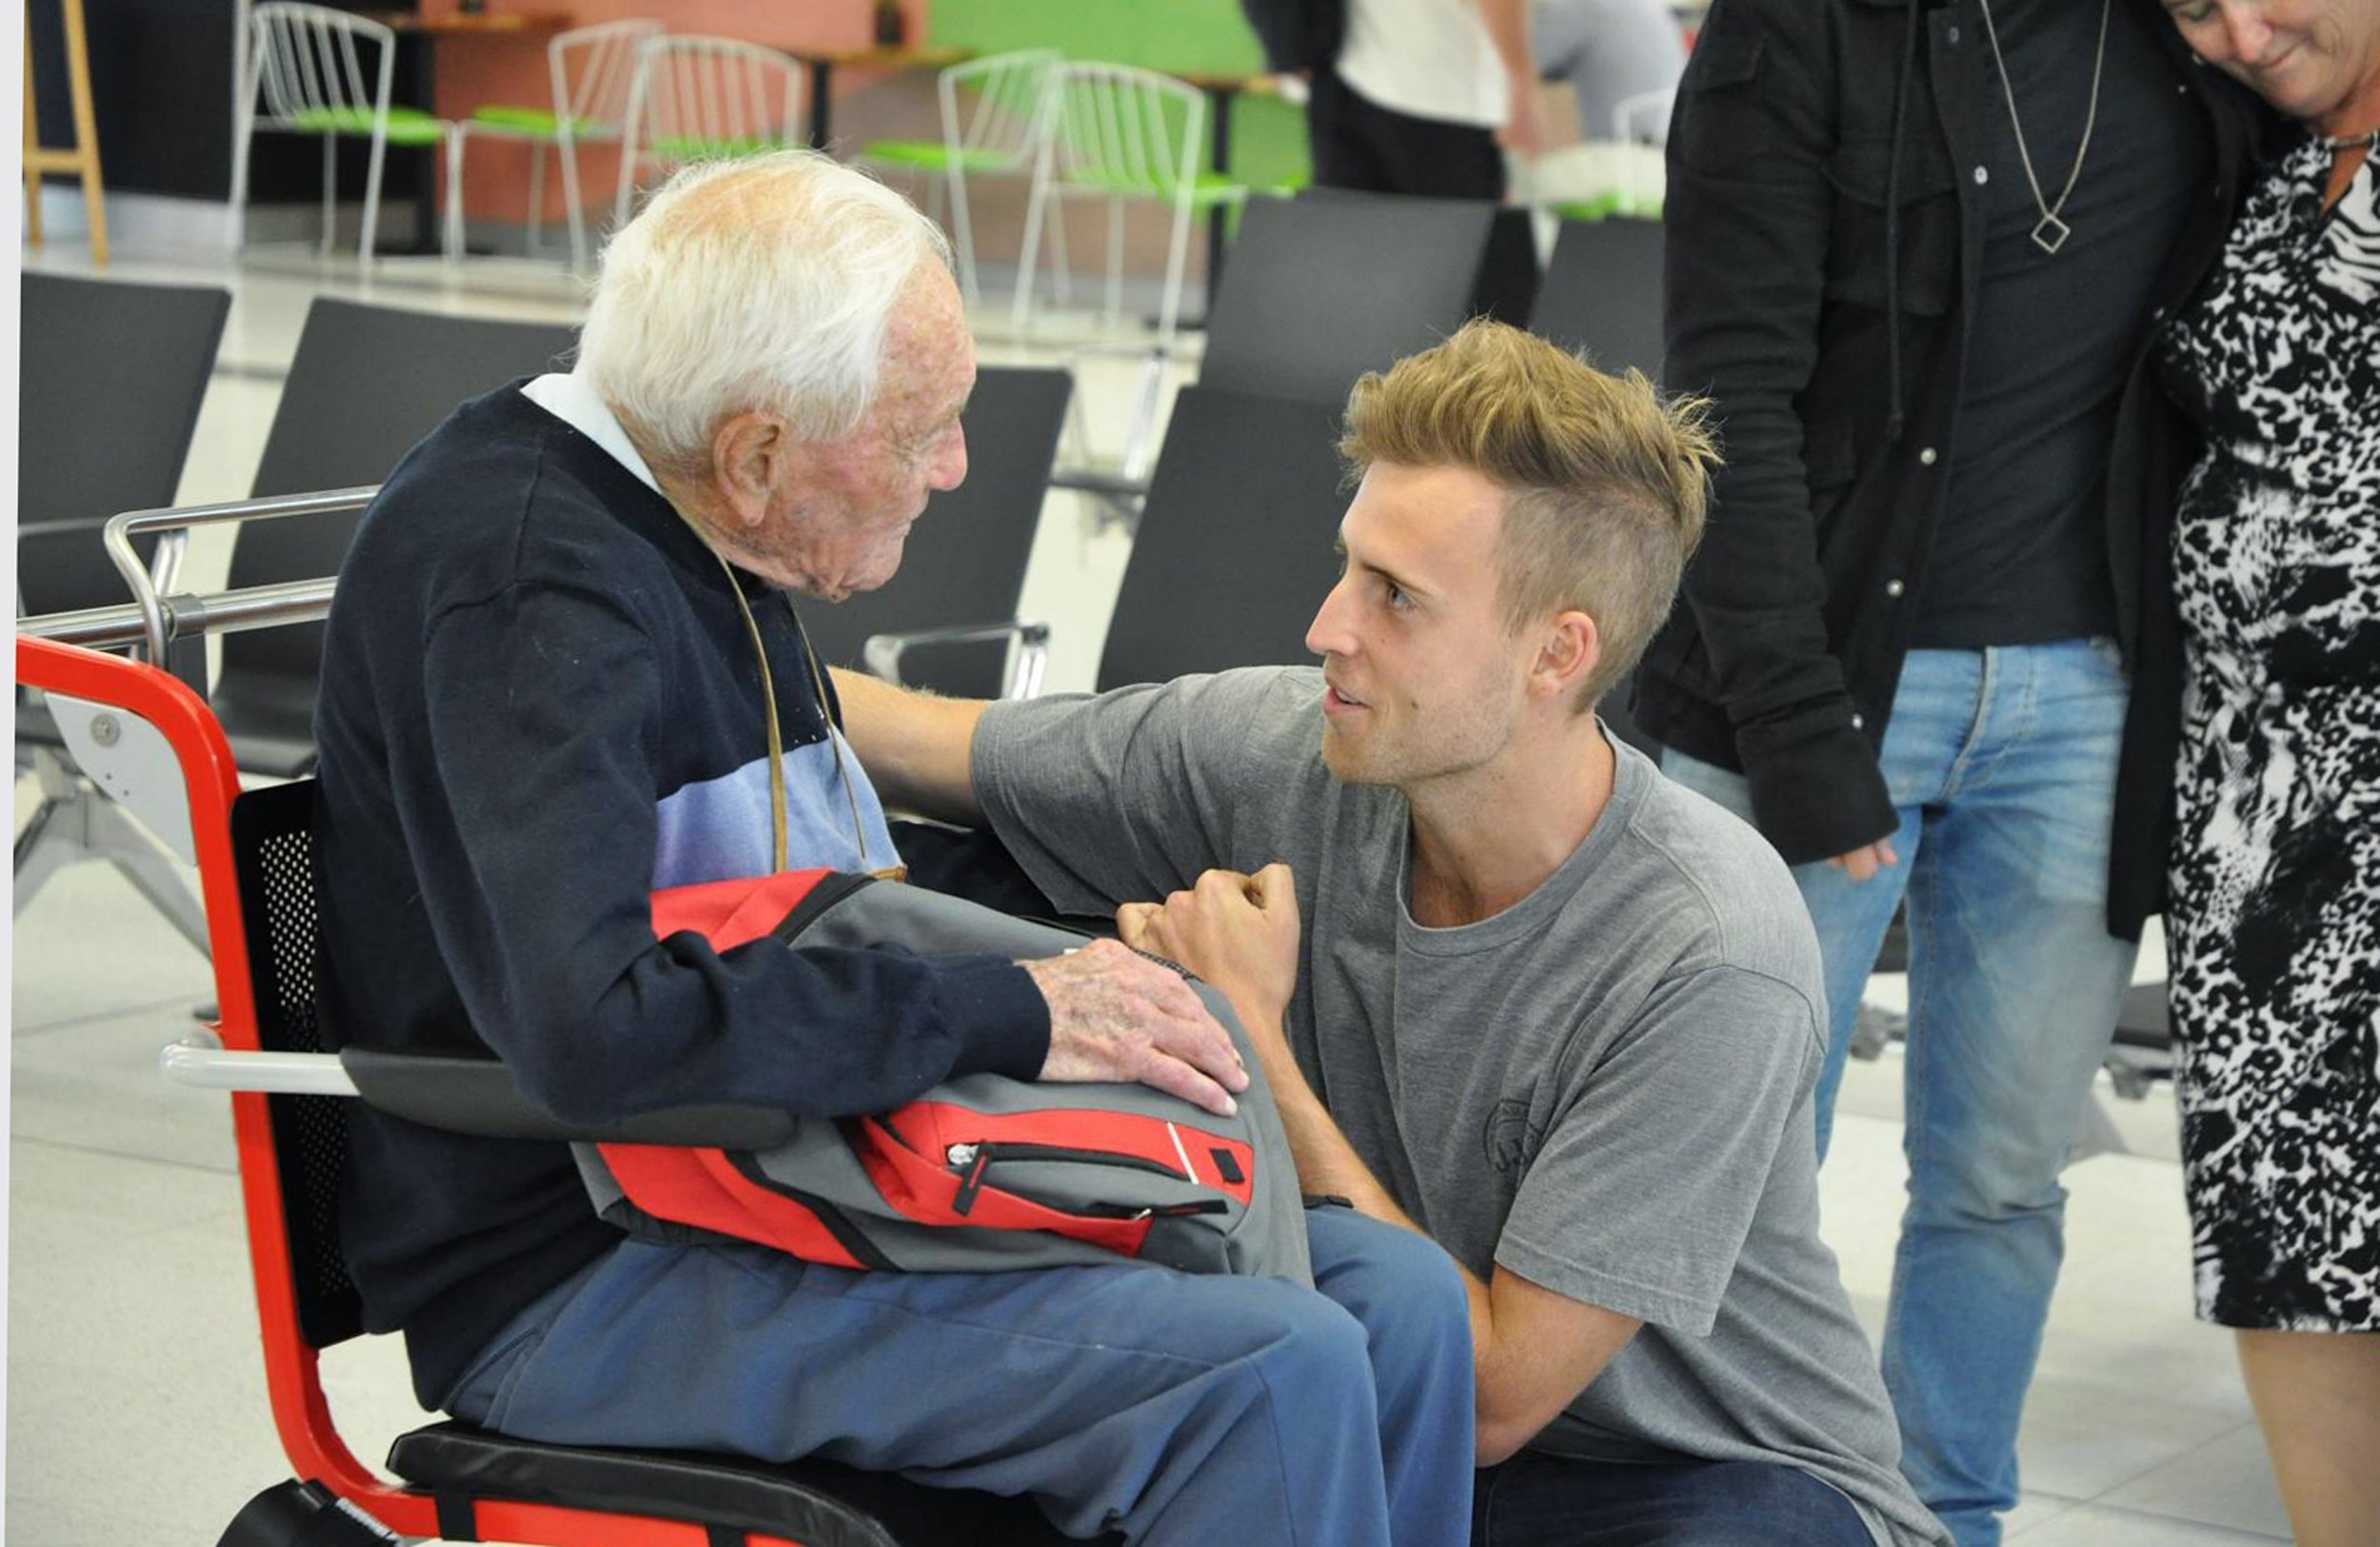 104-year-old's heartbreaking goodbye to grandson before flying to euthanasia clinic